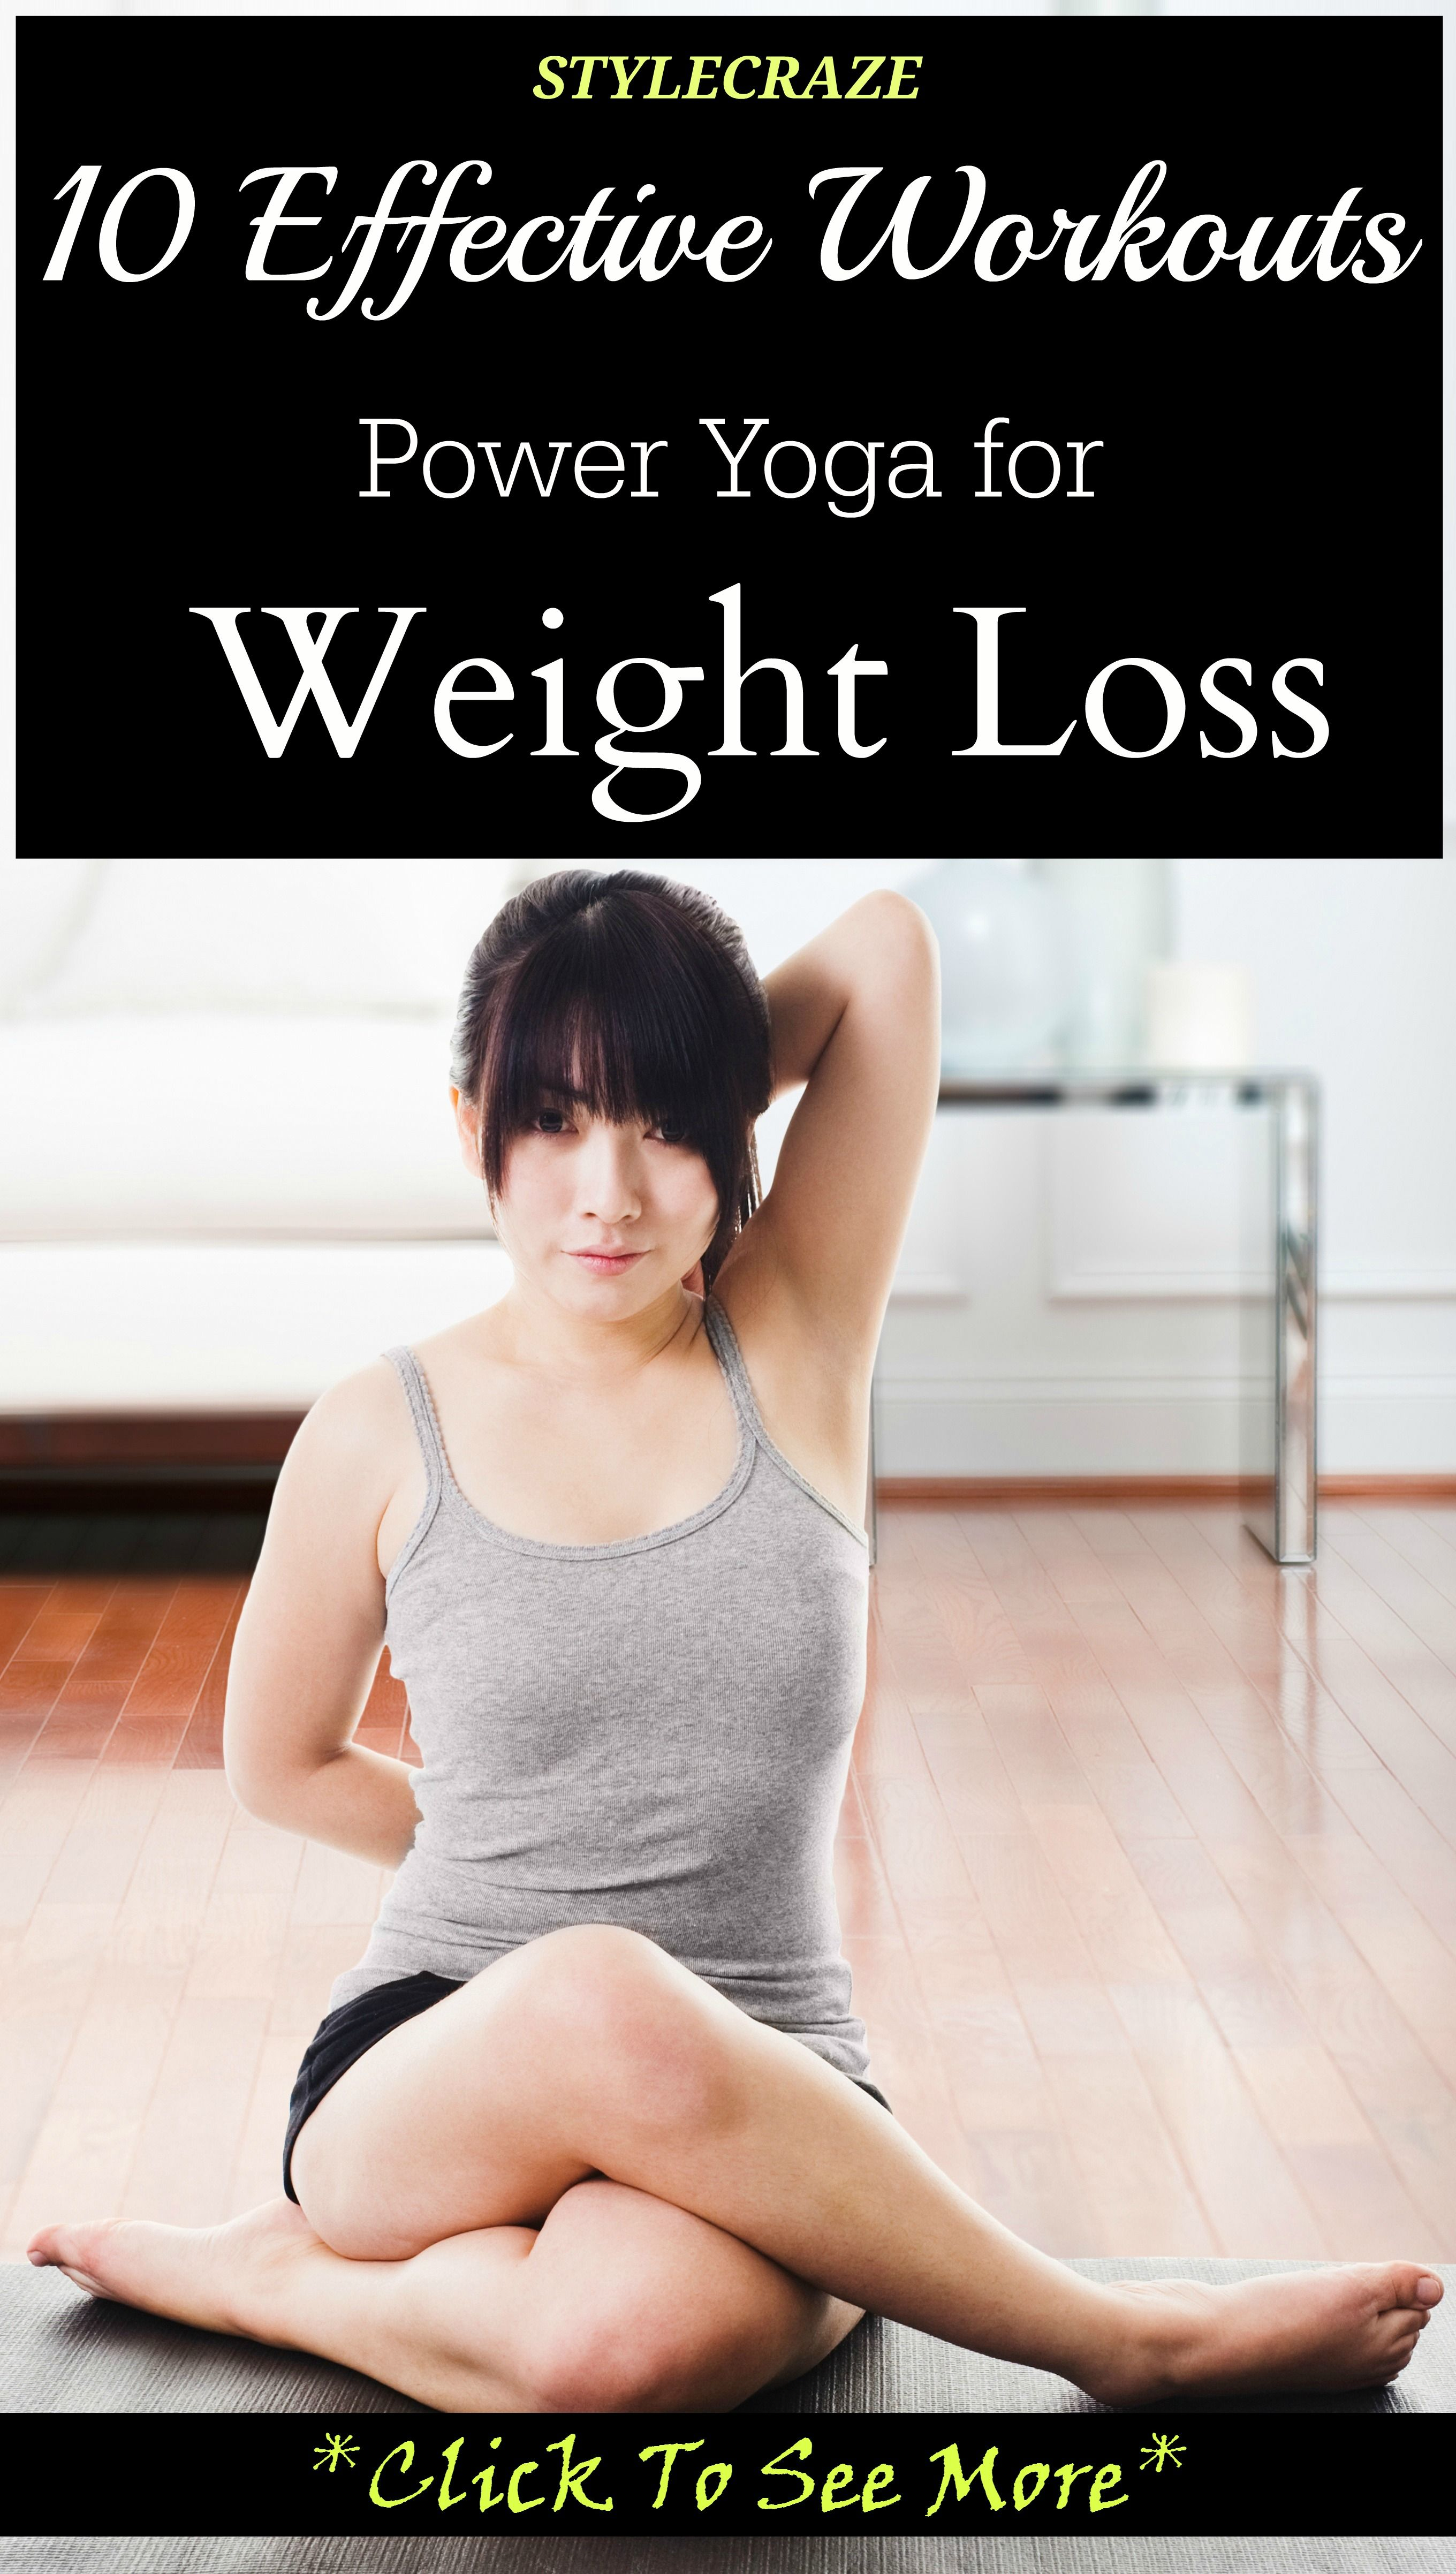 When to drink protein shake to lose weight photo 5